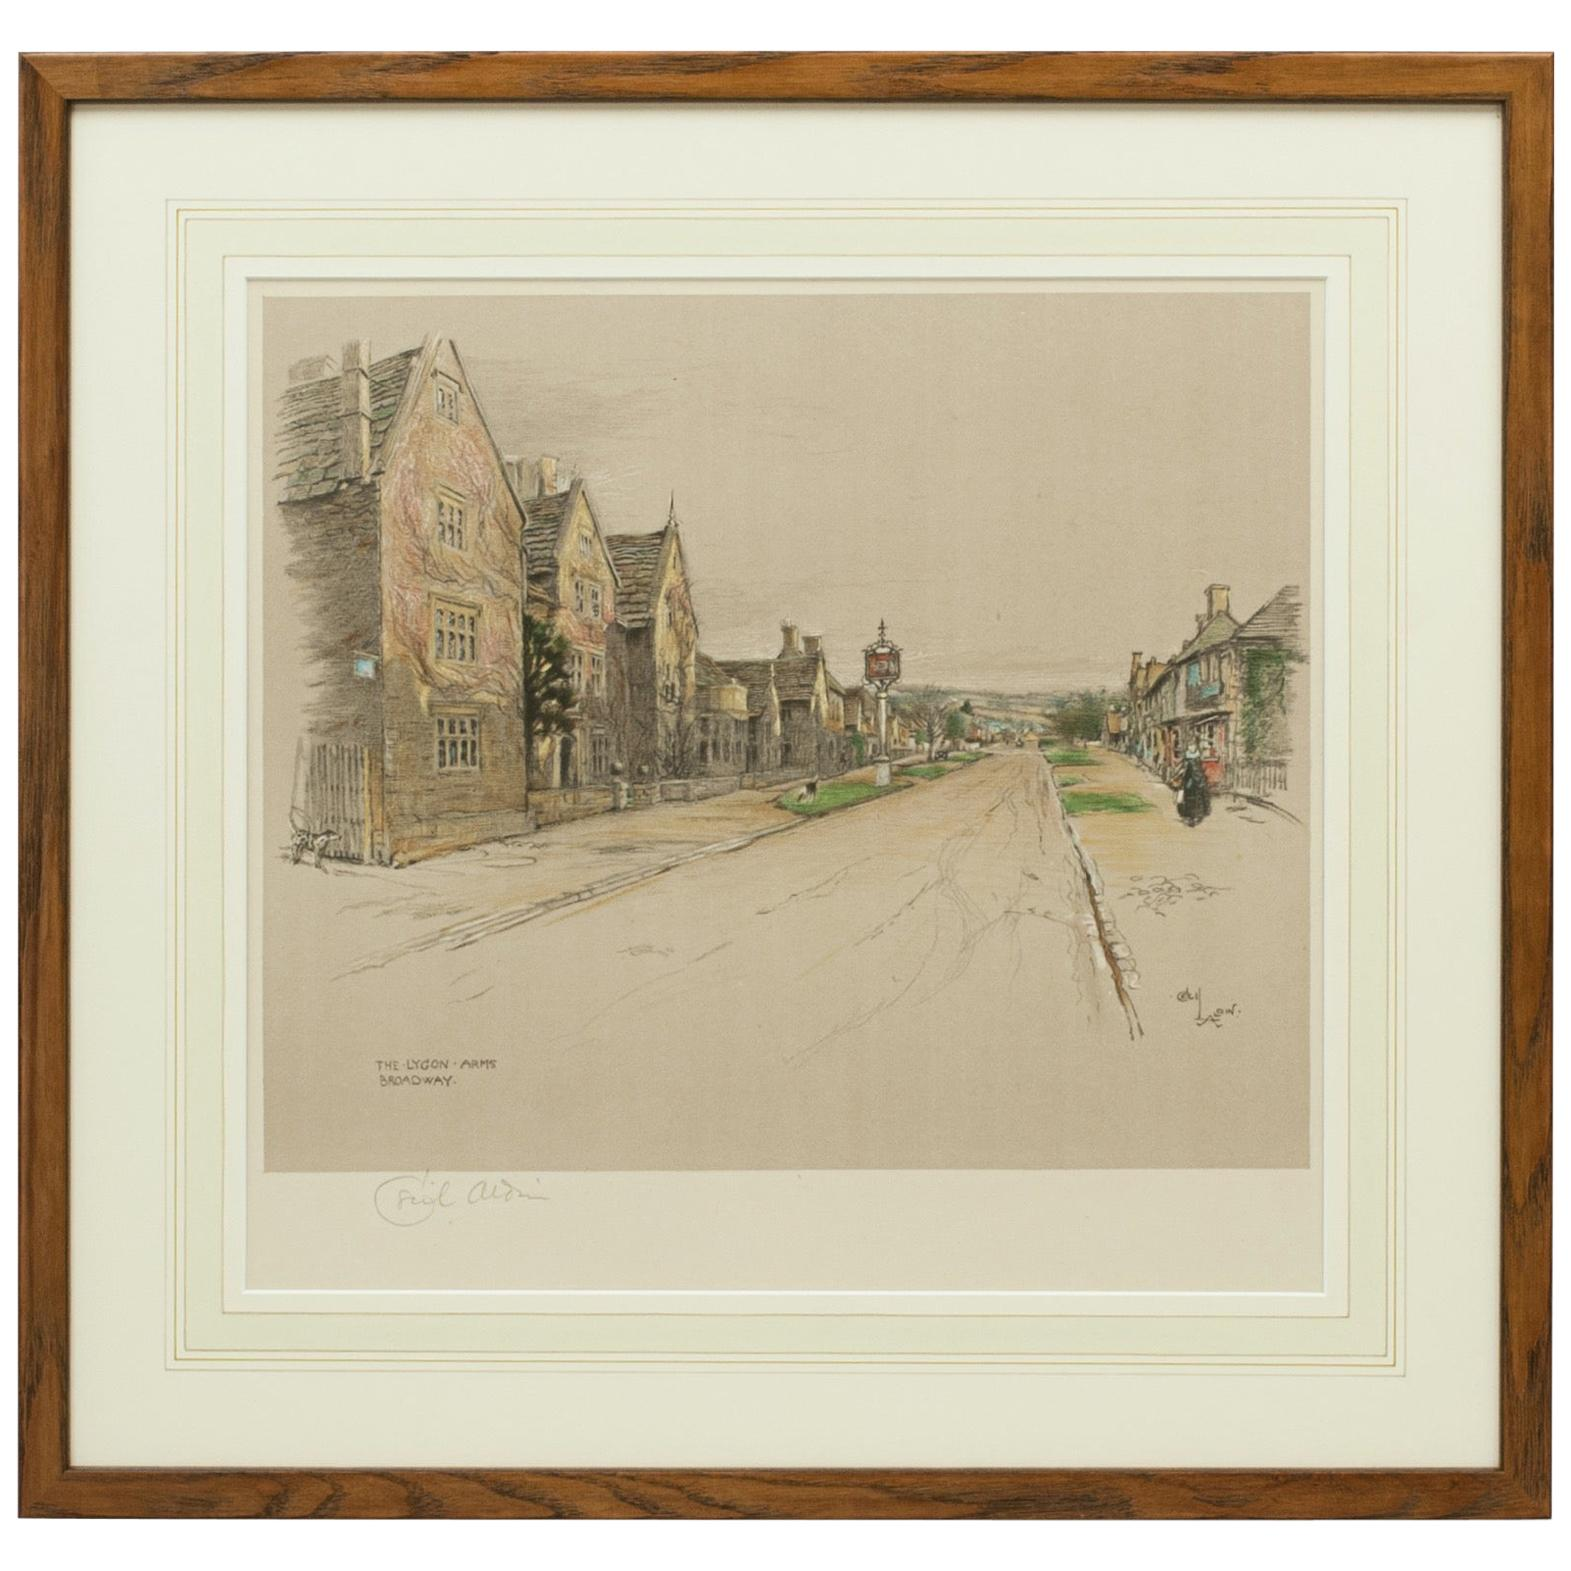 Antique Print, The Lygon Arms, Broadway by Cecil Aldin